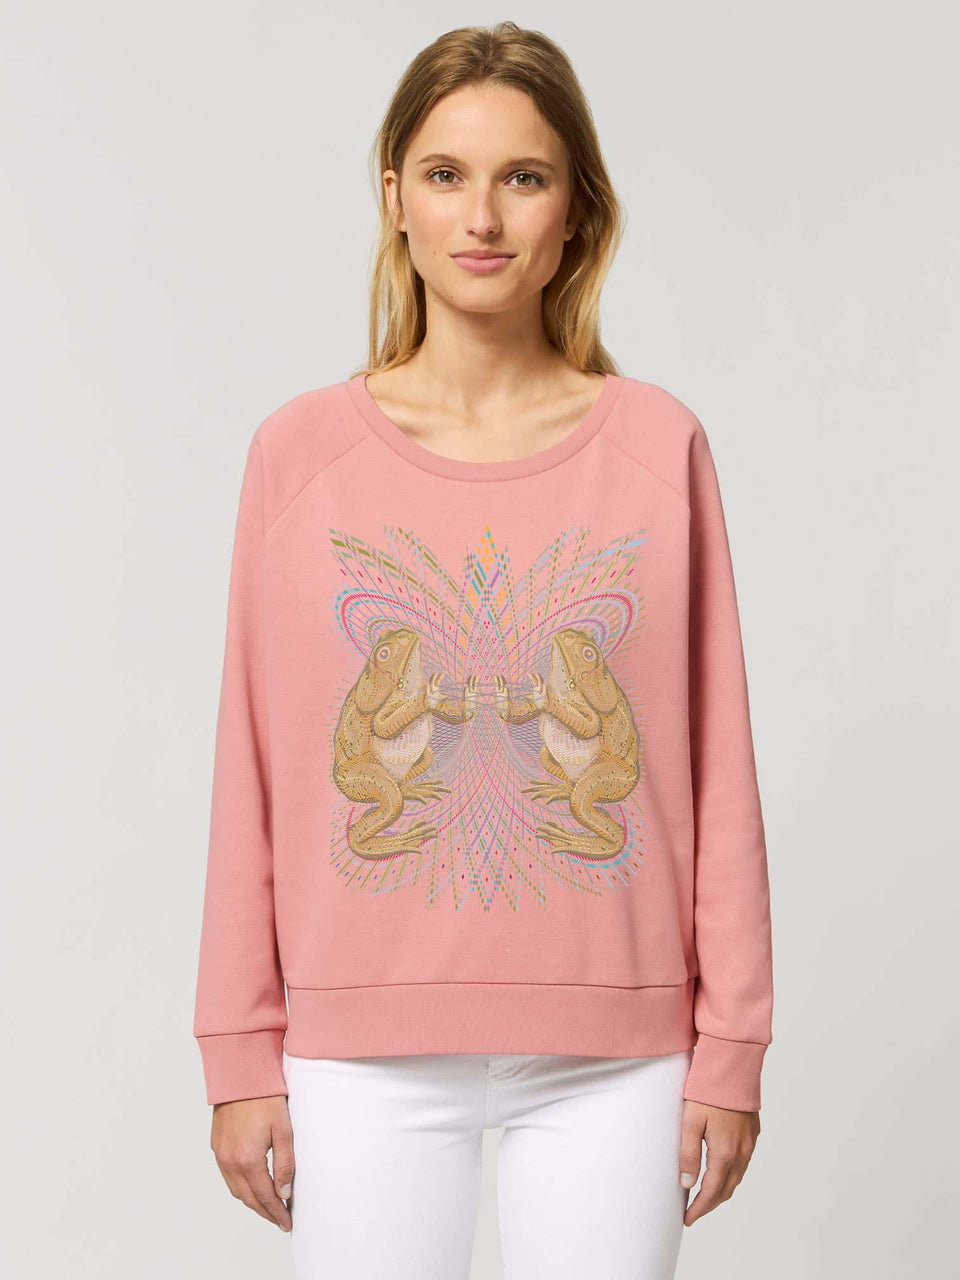 Bufo Alvarius Made To Order  Women relaxed fit sweatshirt - Canyon Pink